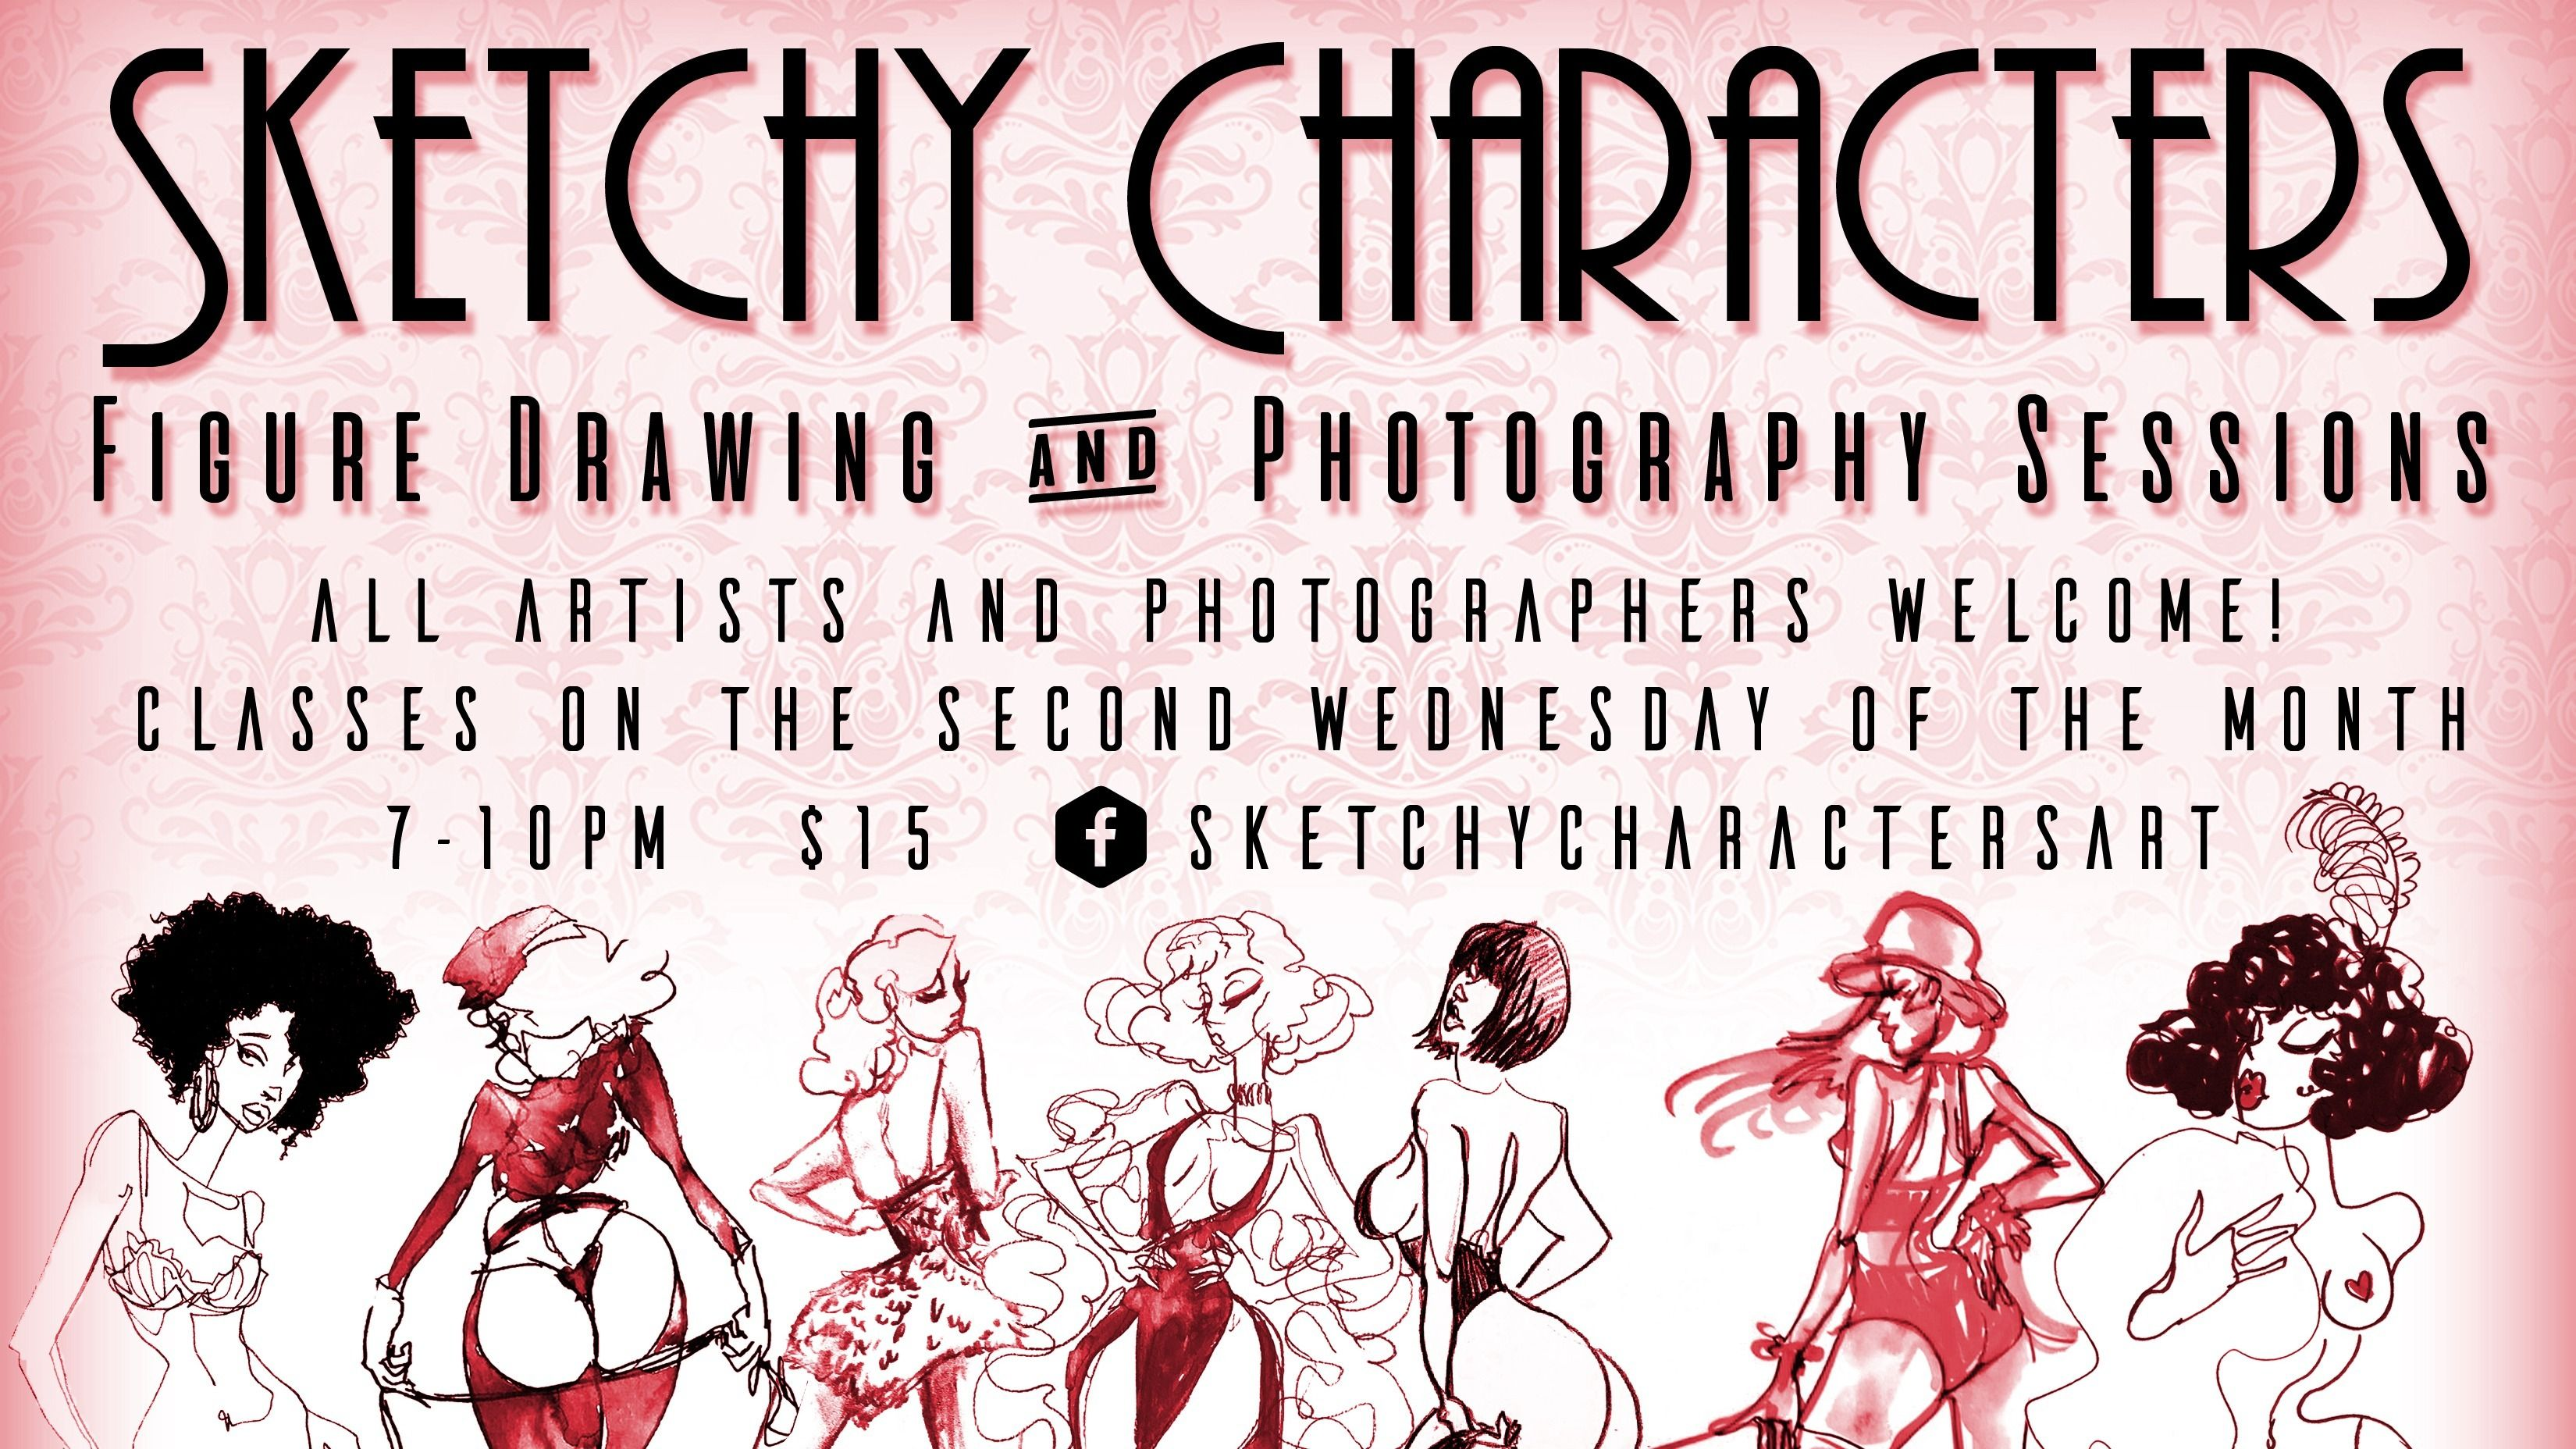 Sketchy Characters: Themed Drawing and Photography Sessions